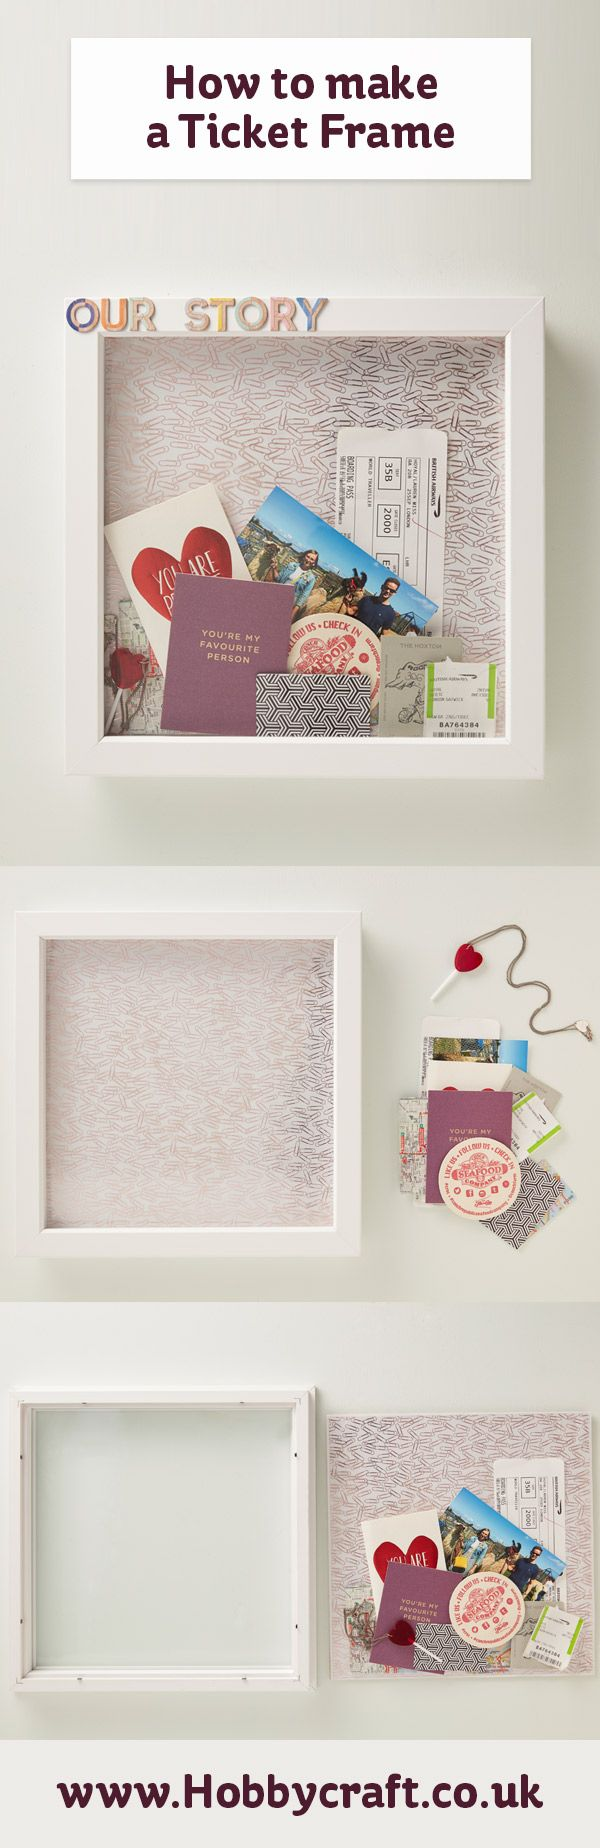 How to Make a Ticket Box Frame | Pinterest | Ticket boxes, Easy ...